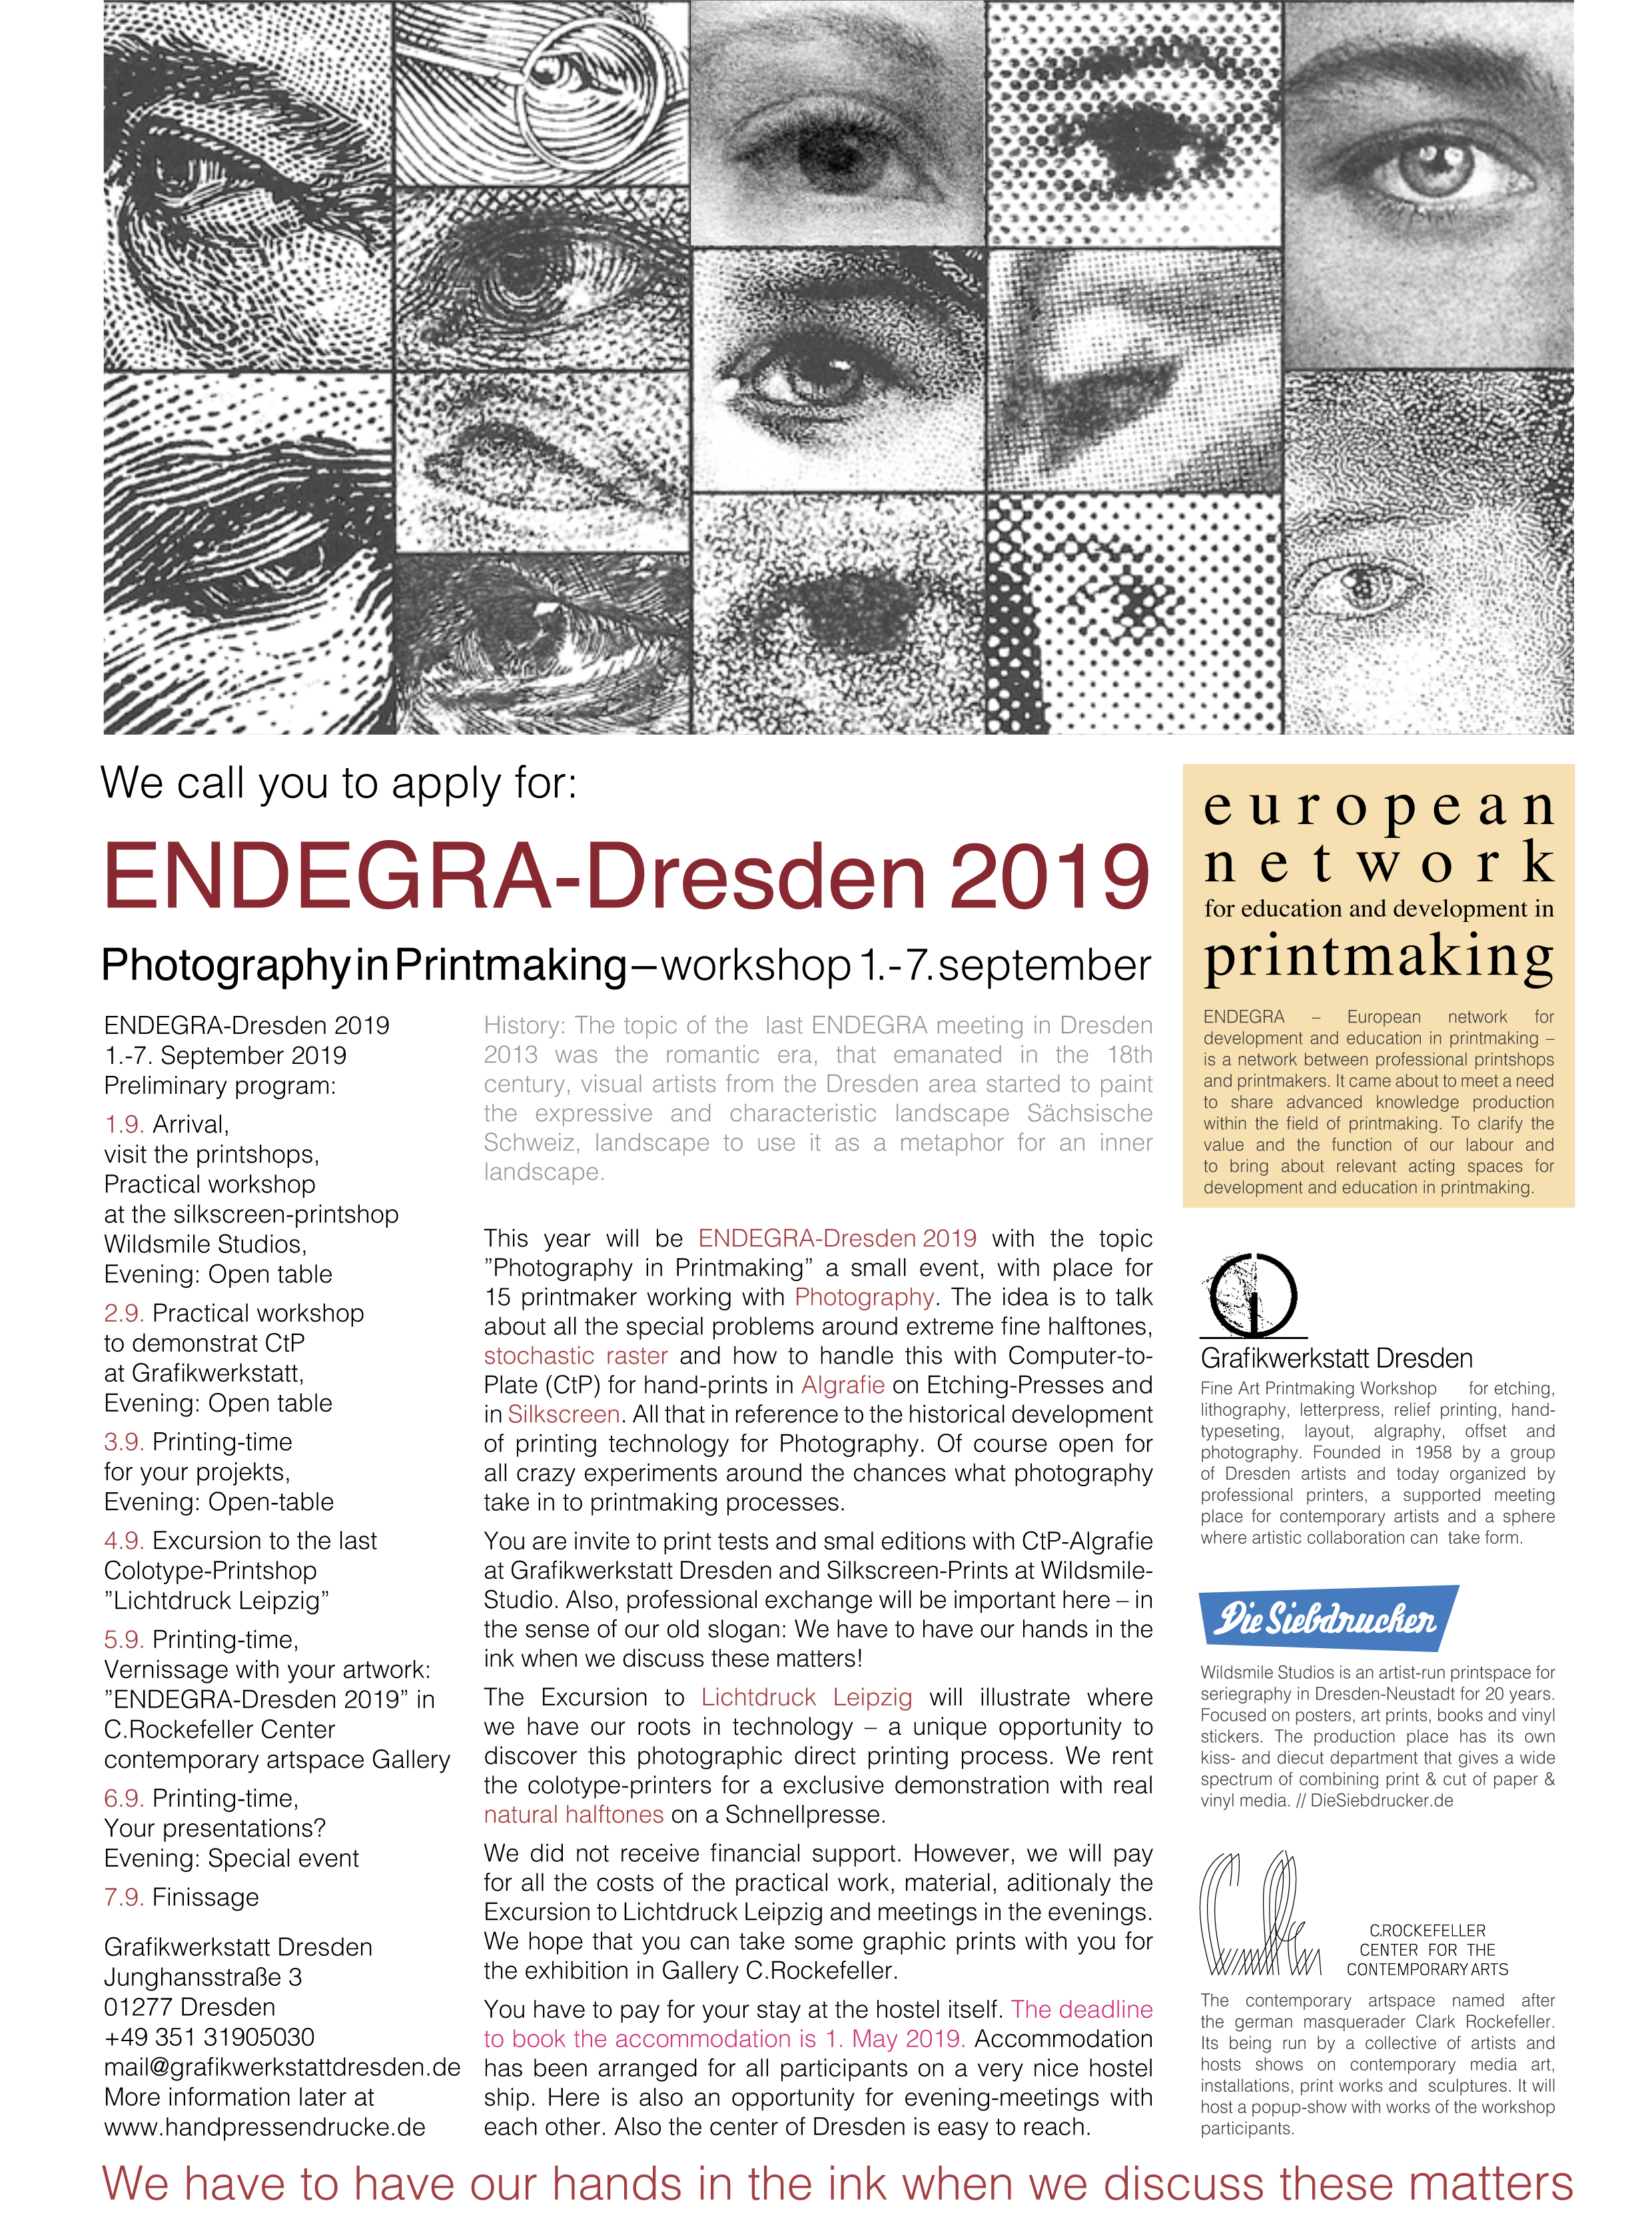 www endegra org   A network between professional print shops